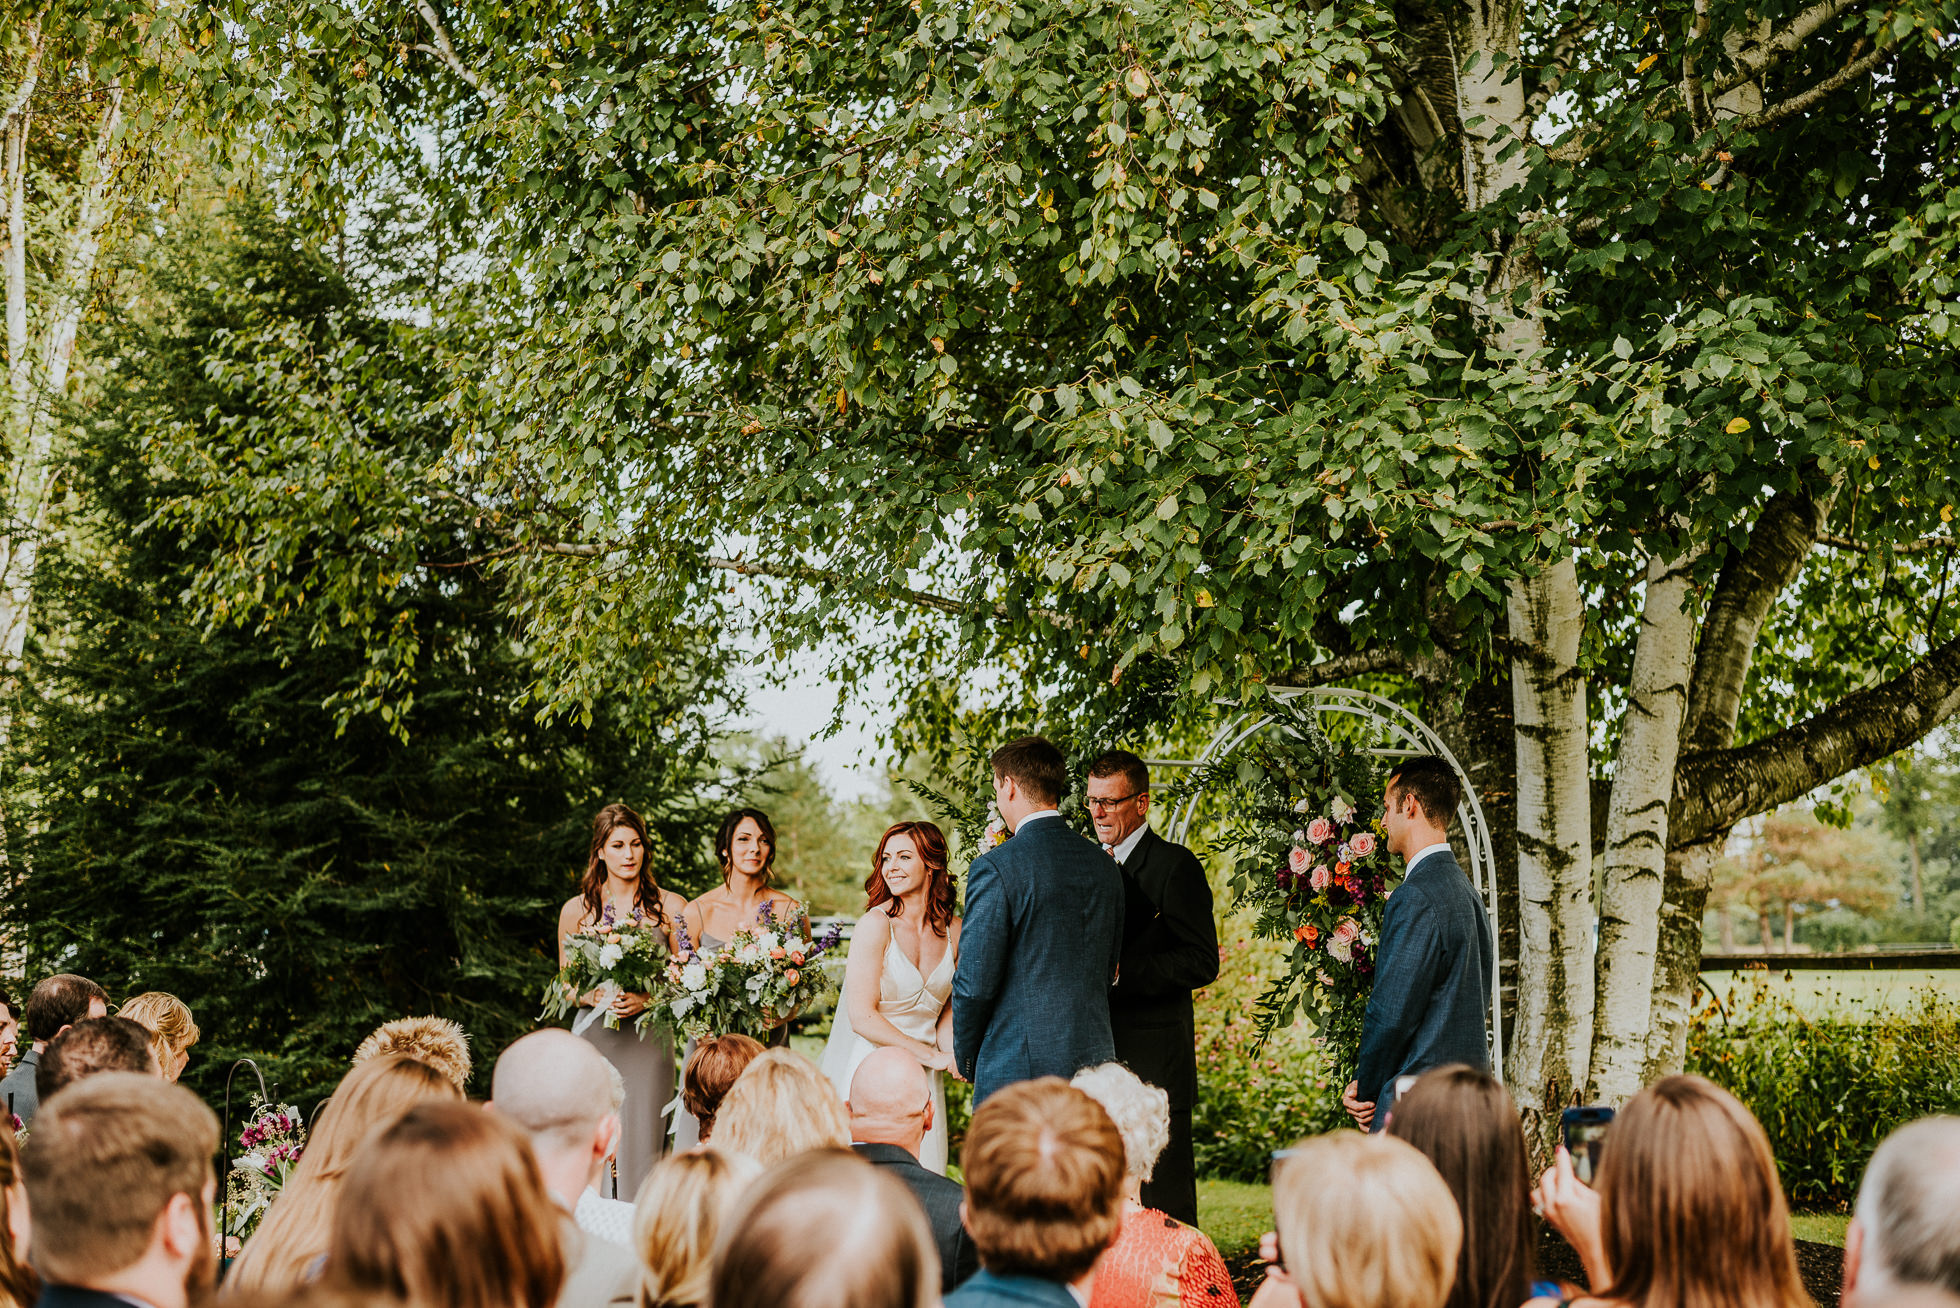 bride and groom outdoor ceremony at olde tater barn wedding in central bridge, ny photographed by traverse the tides